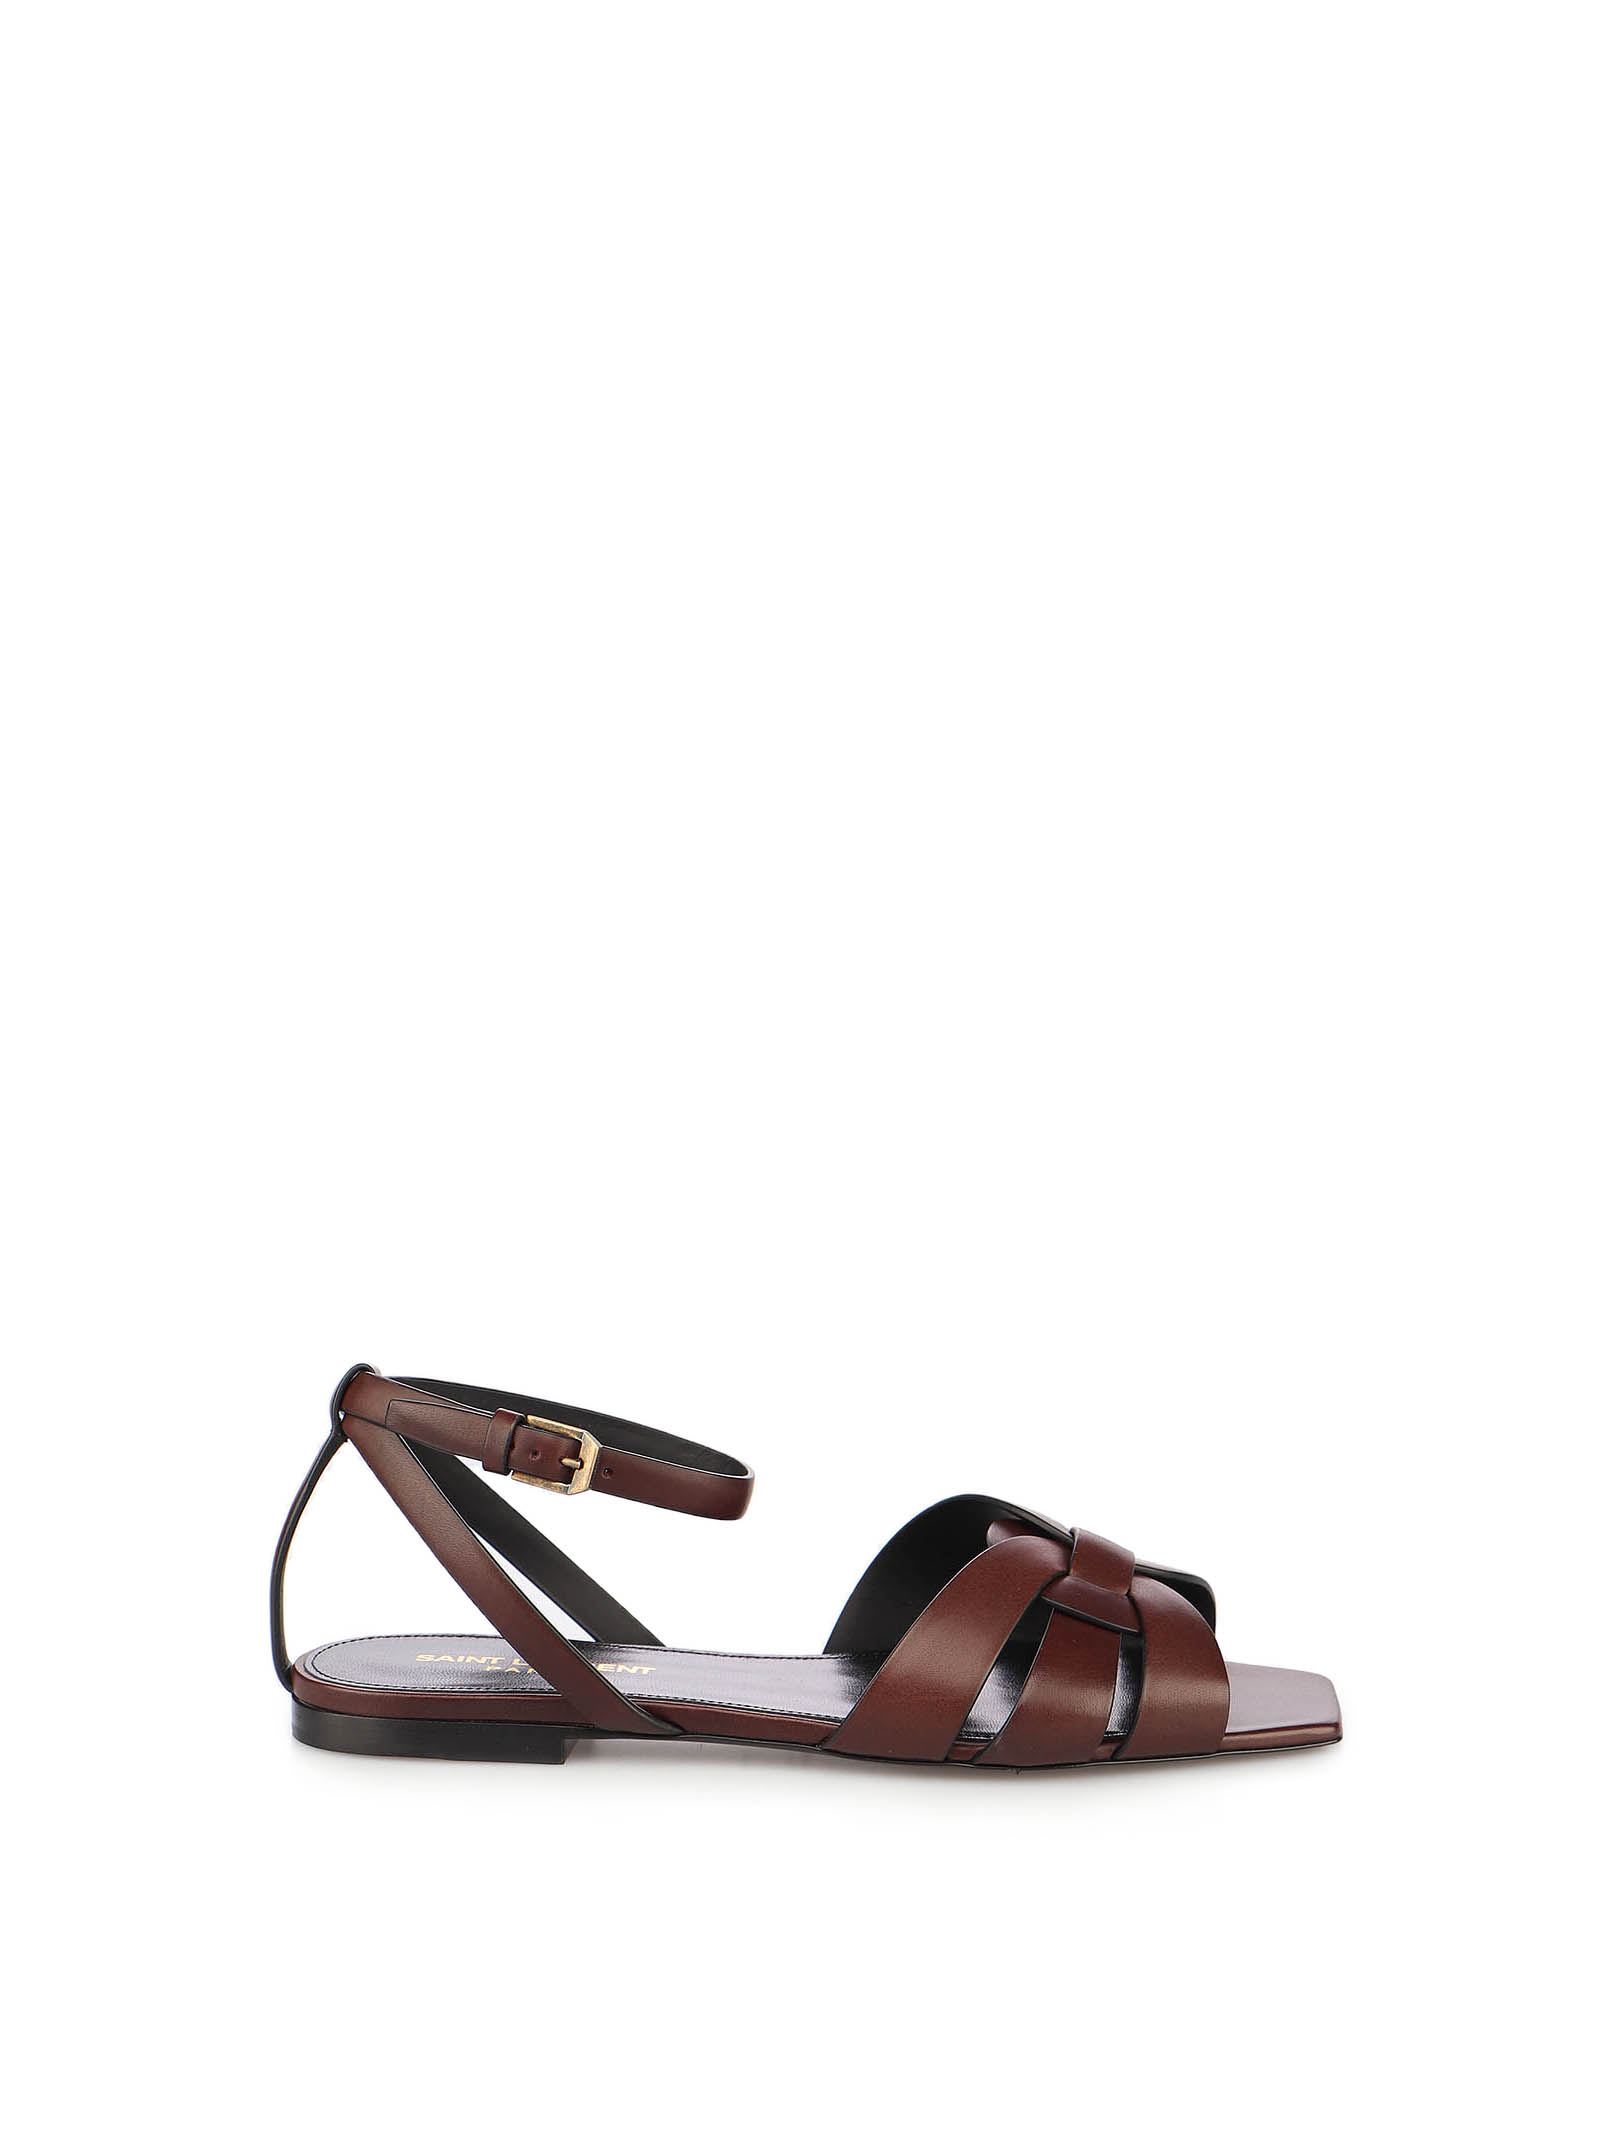 Picture of Saint Laurent | Tribute 05 Ankle Strap Flat Sandals